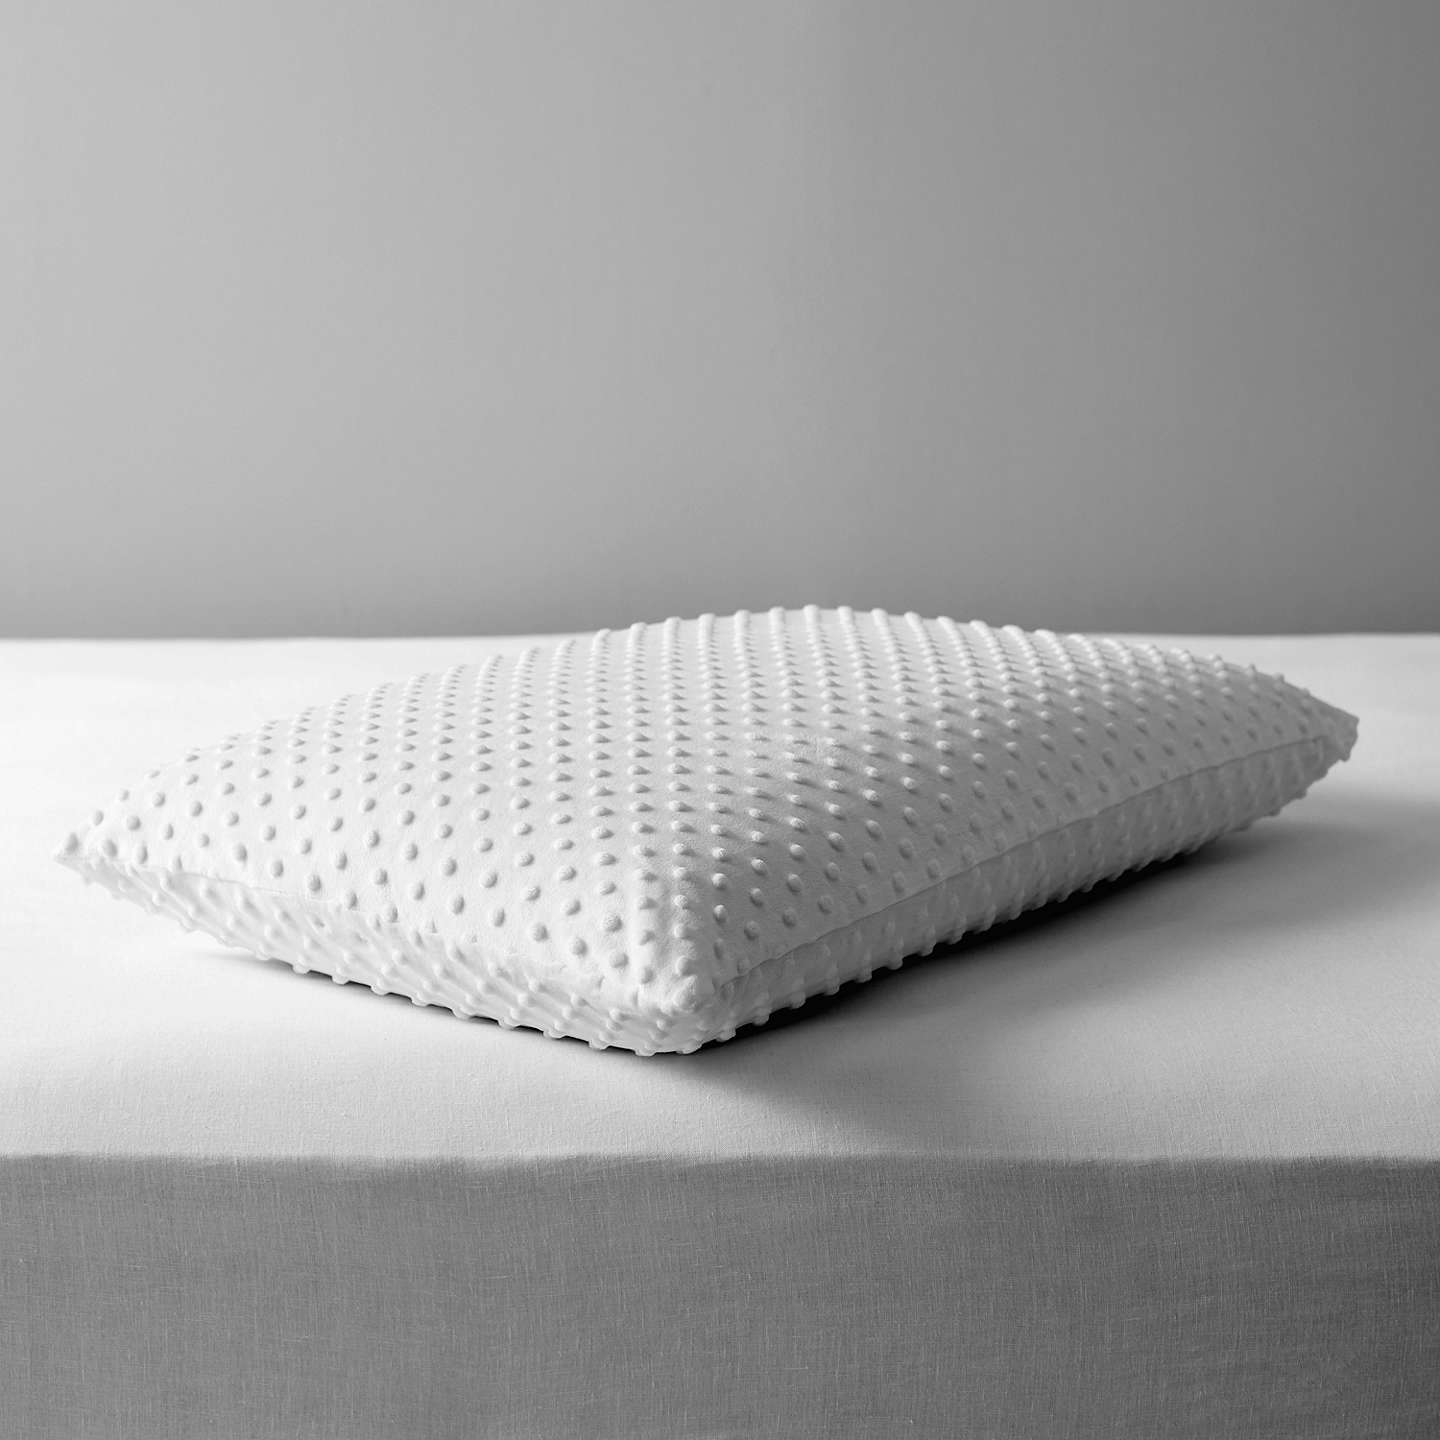 BuyHypnos Latex Low Profile Standard Pillow Online at johnlewis.com